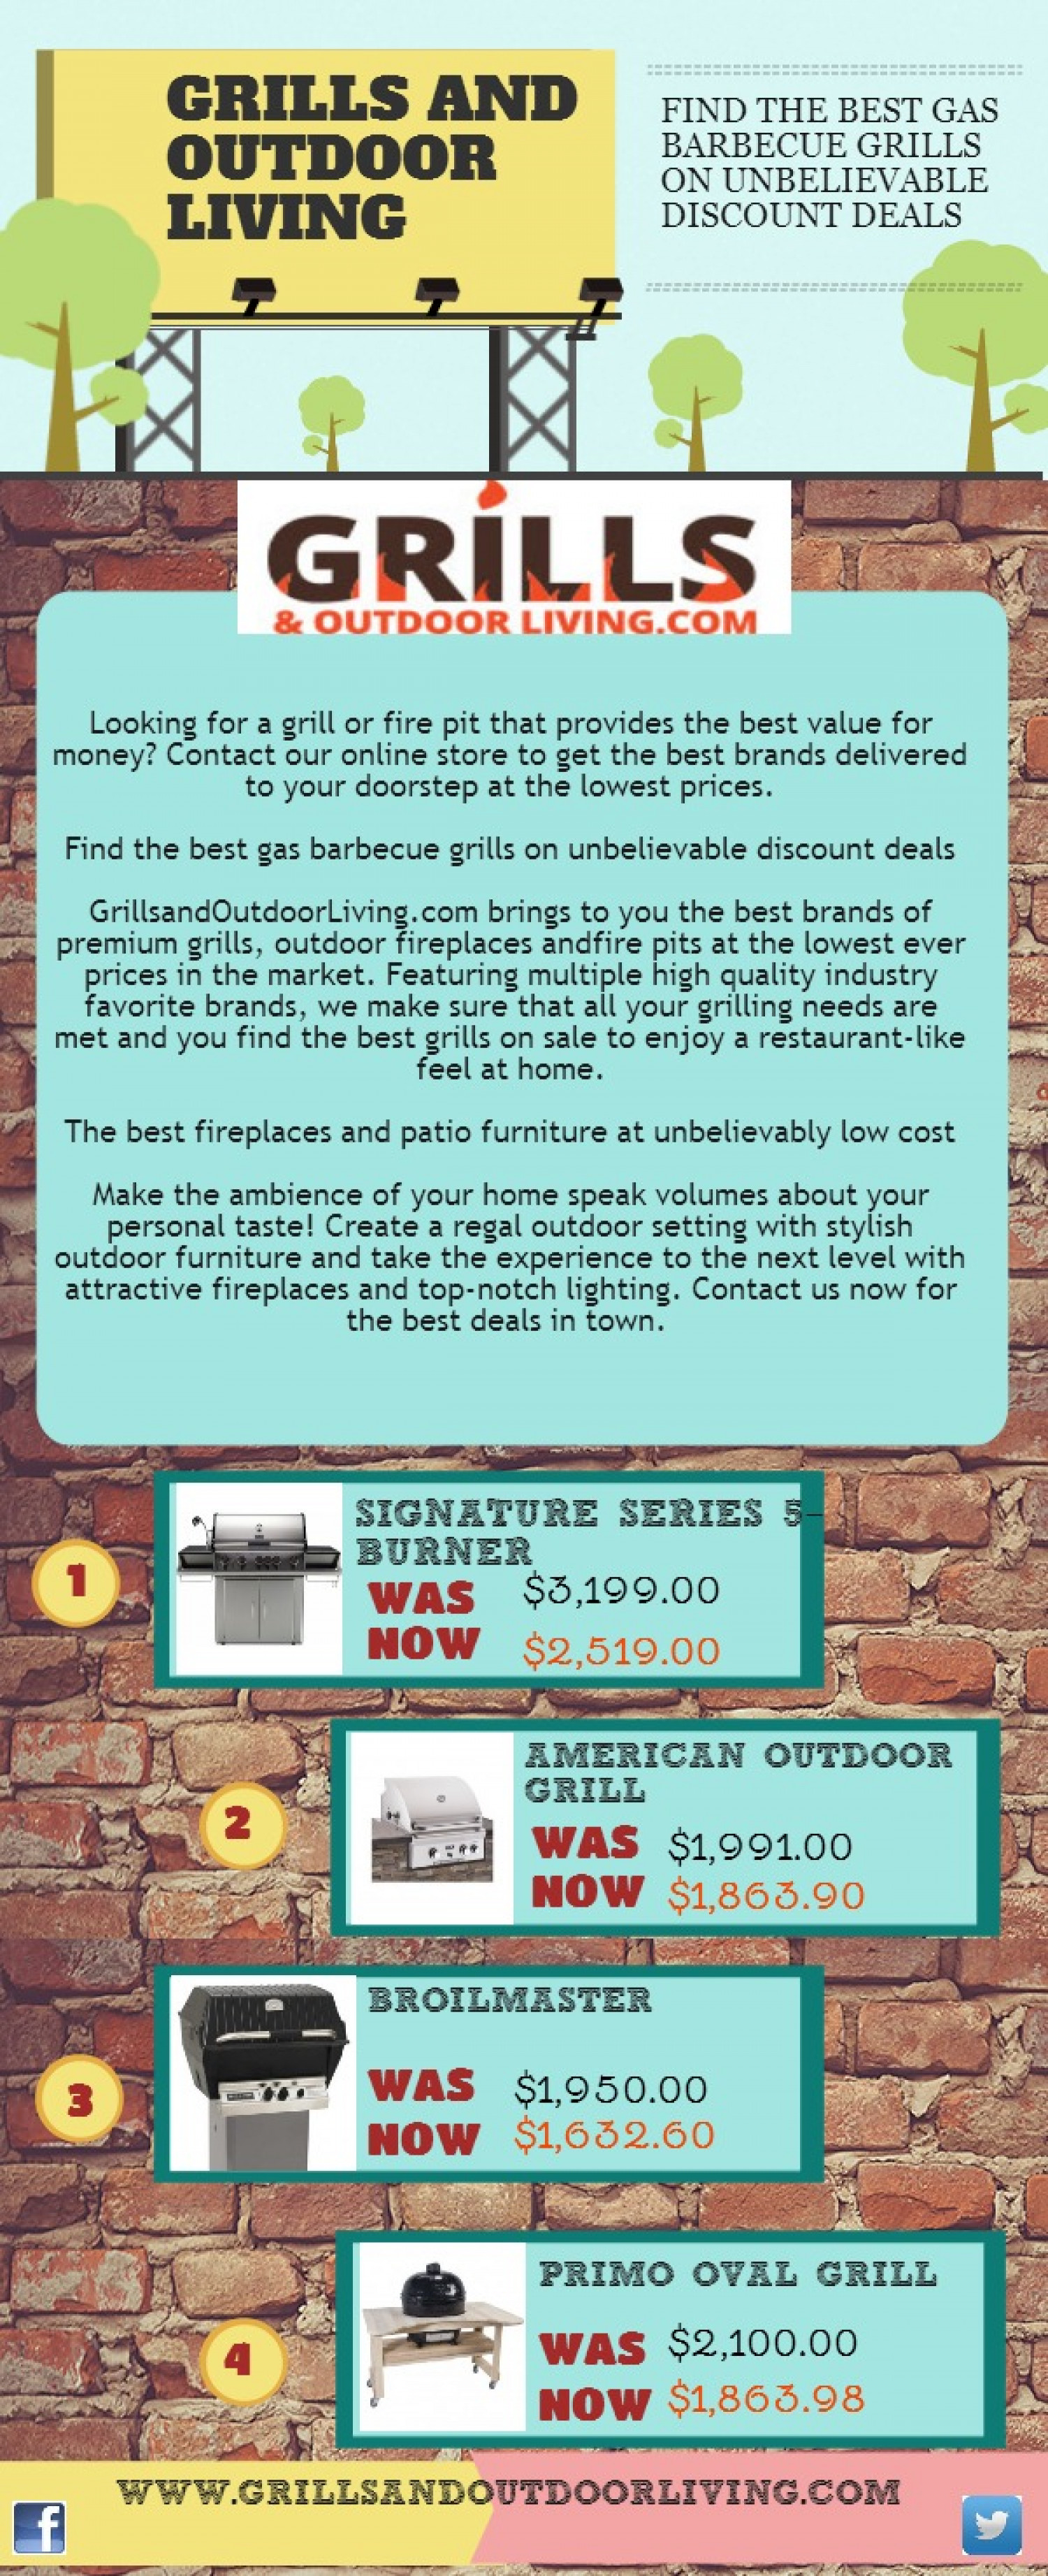 Grills And Outdoor Living Infographic